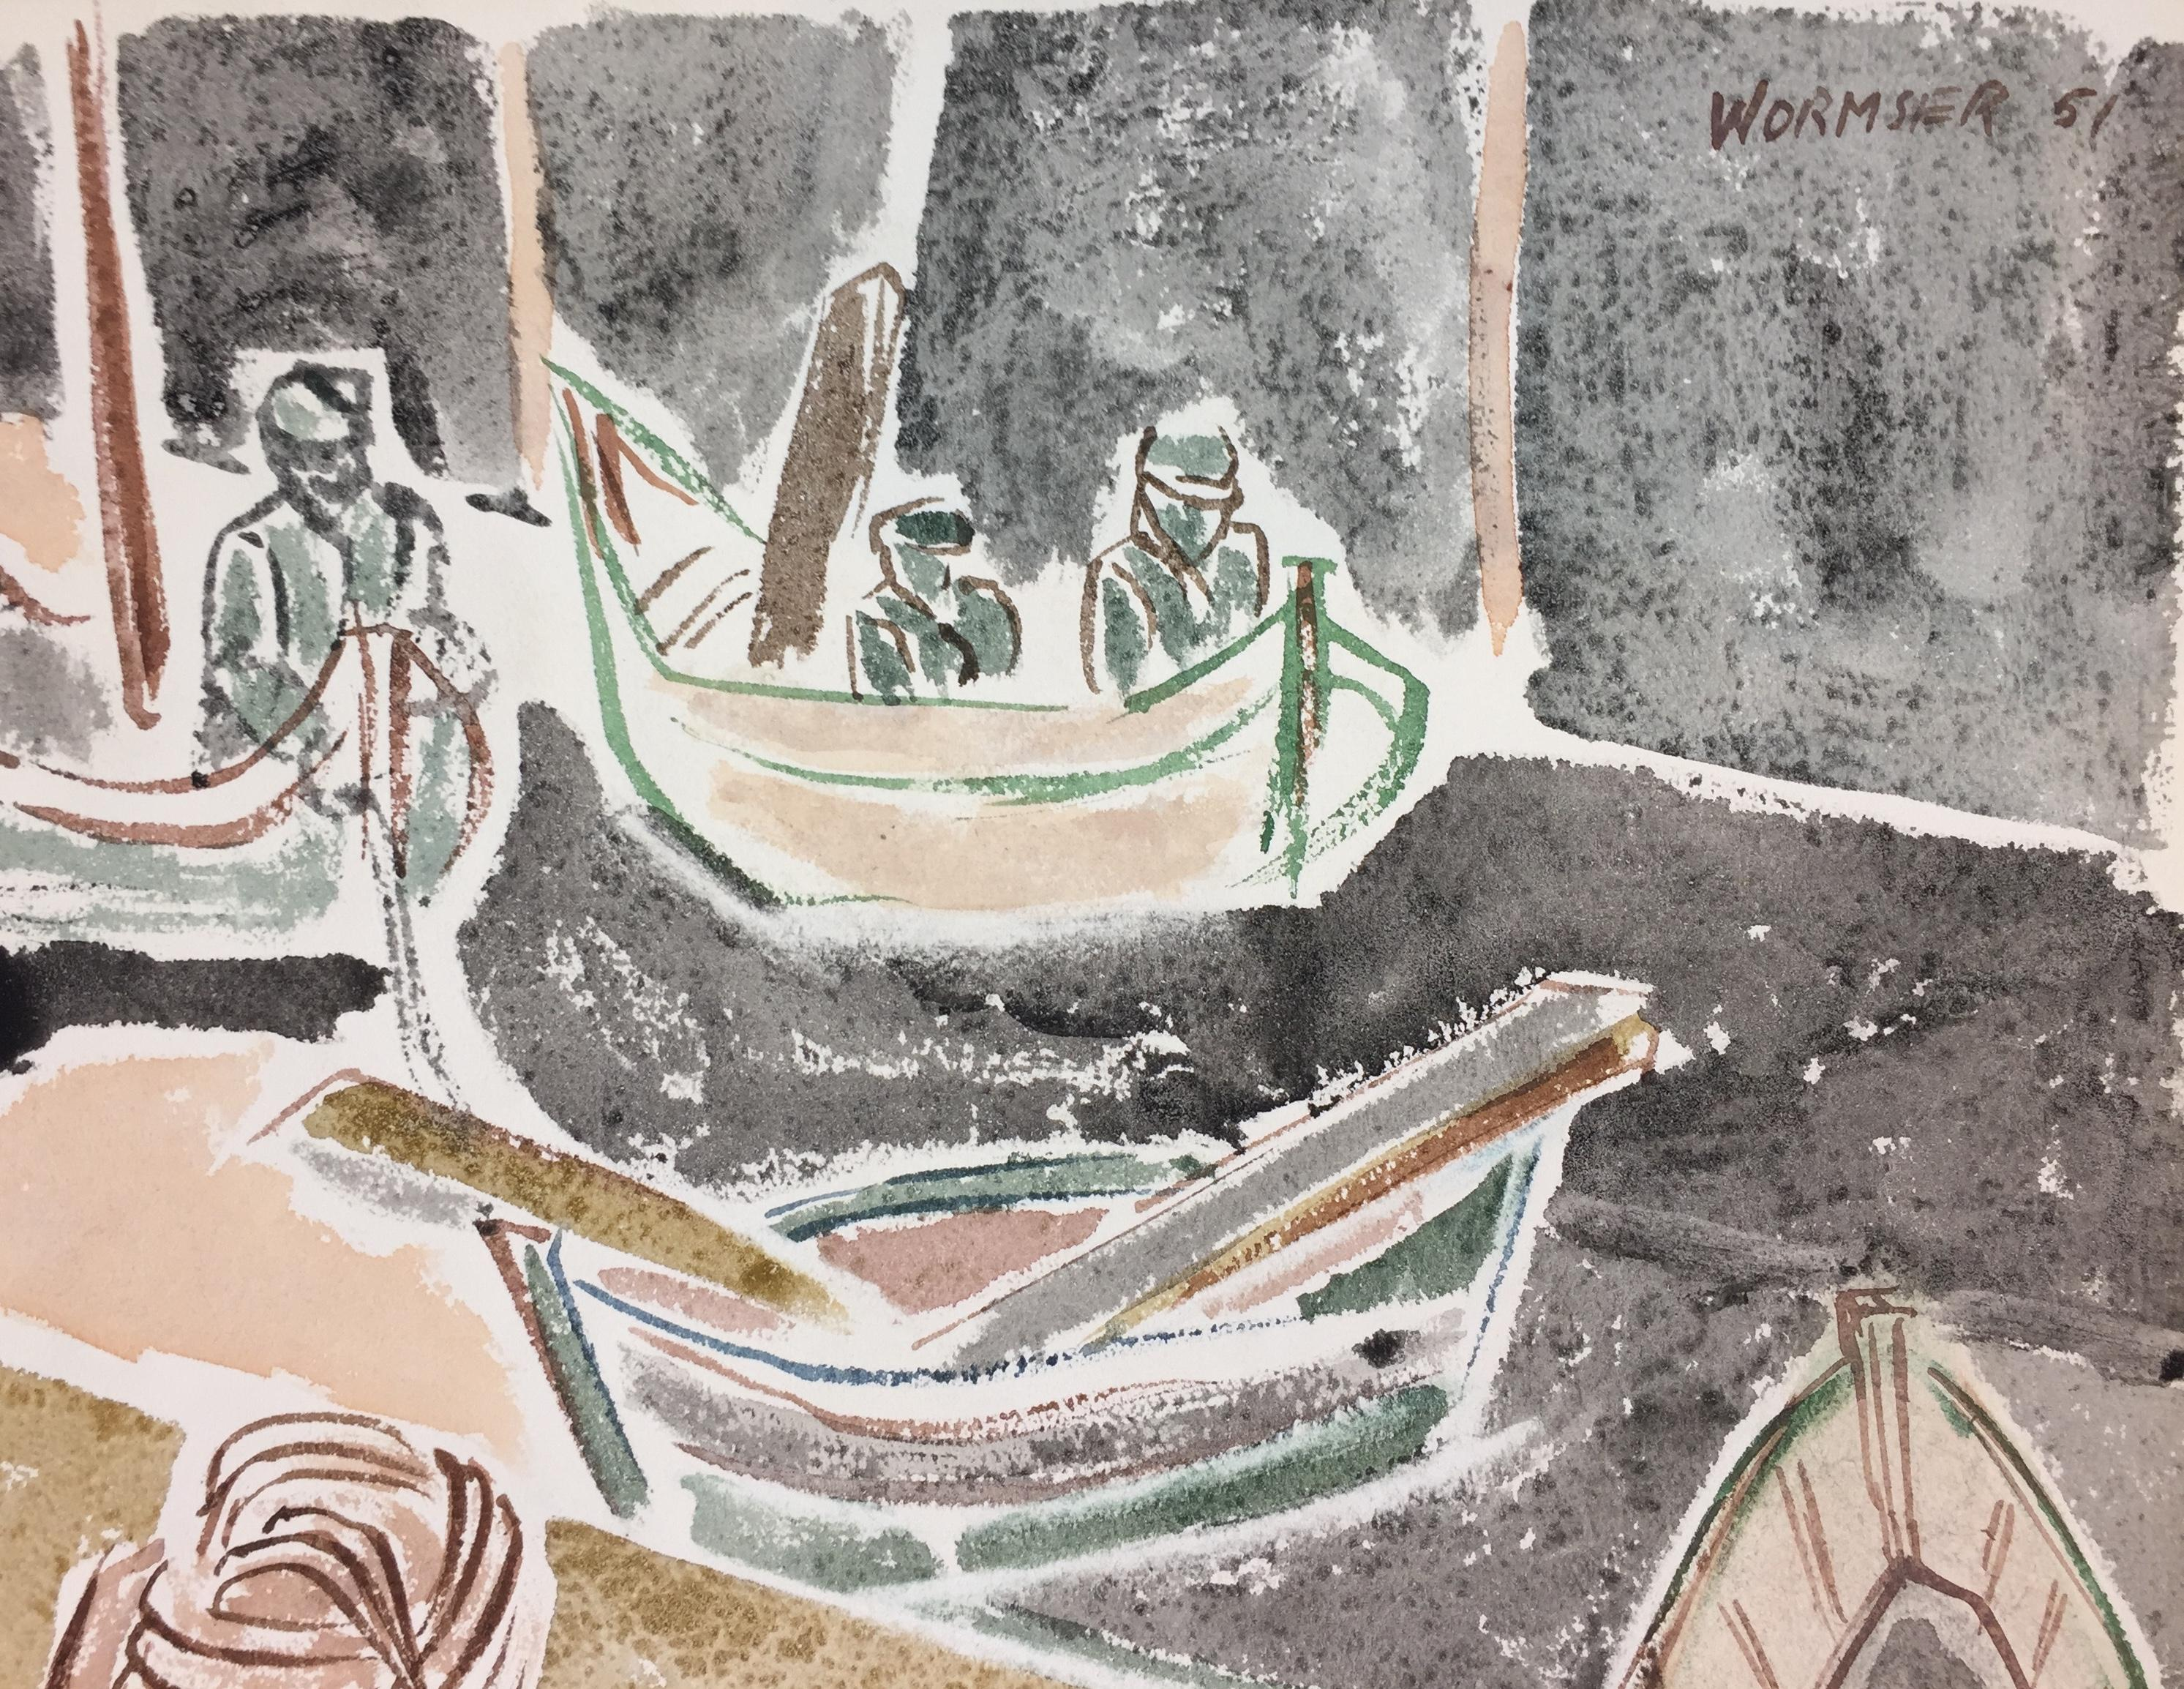 Boats - Original Watercolor on Paper by Henry Wormser - 1951